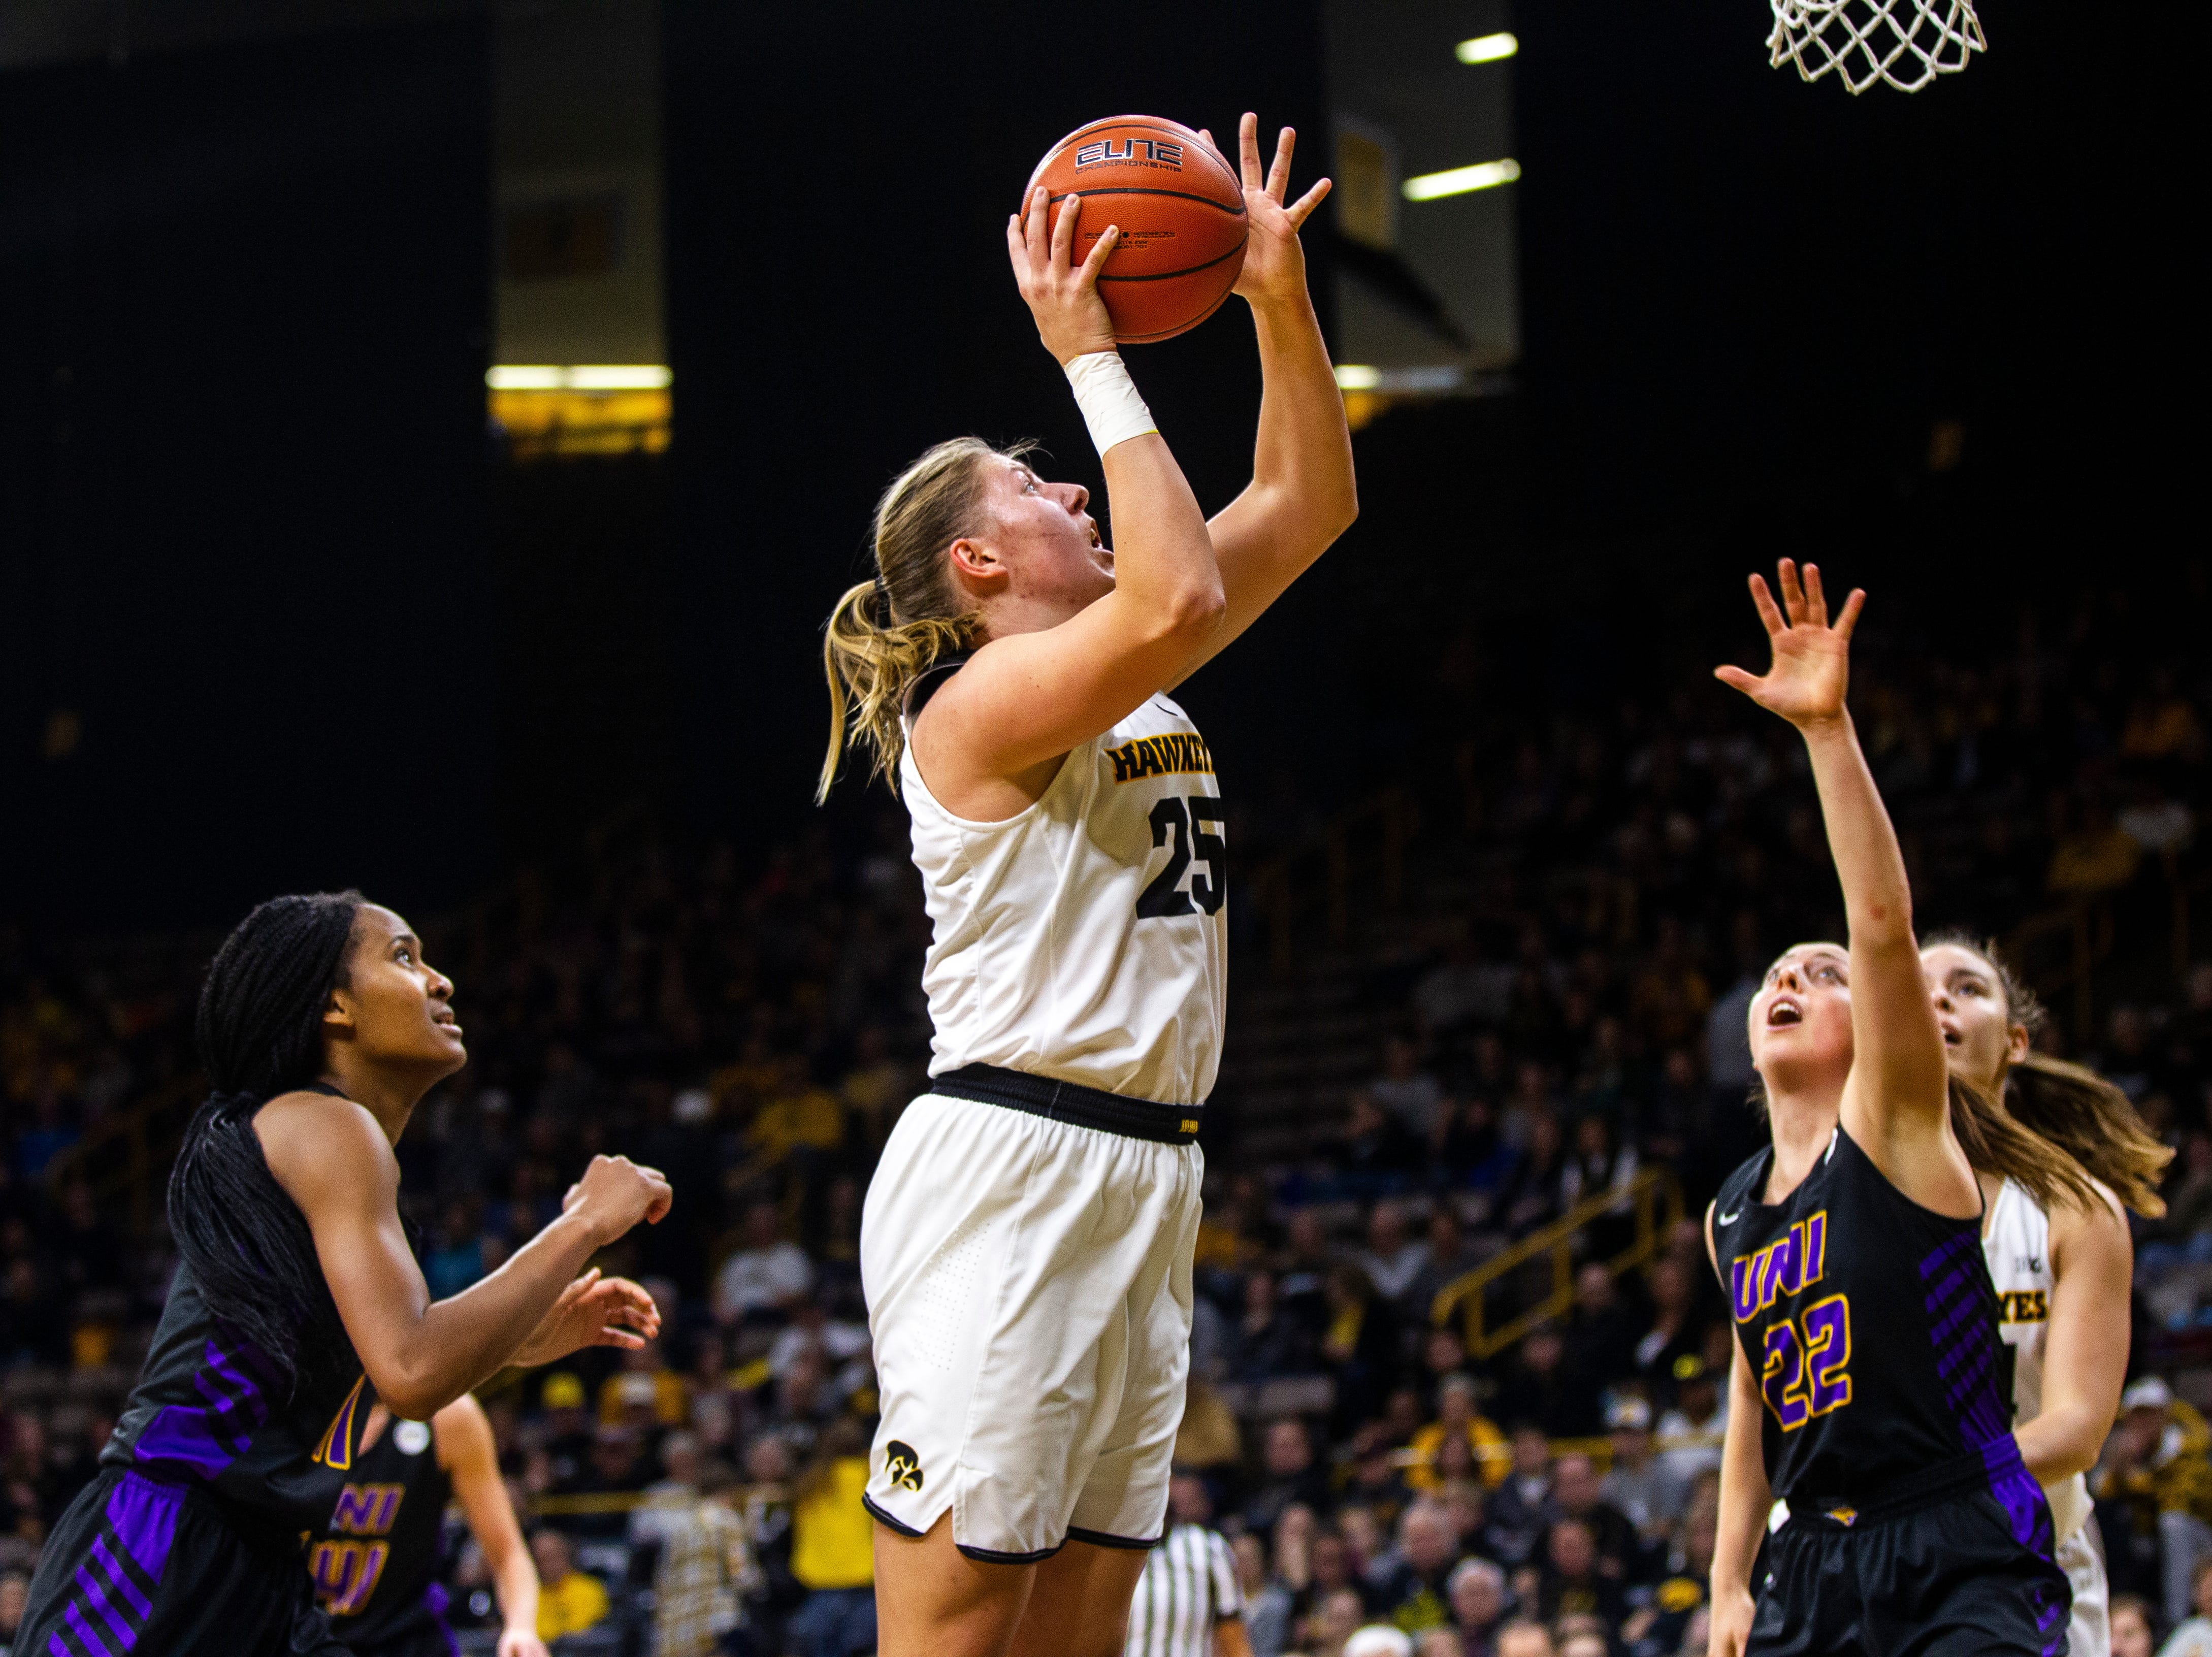 Iowa's Monika Czinano (25) attempts a basket during a NCAA women's basketball game on Sunday, Dec. 16, 2018, at Carver-Hawkeye Arena in Iowa City.